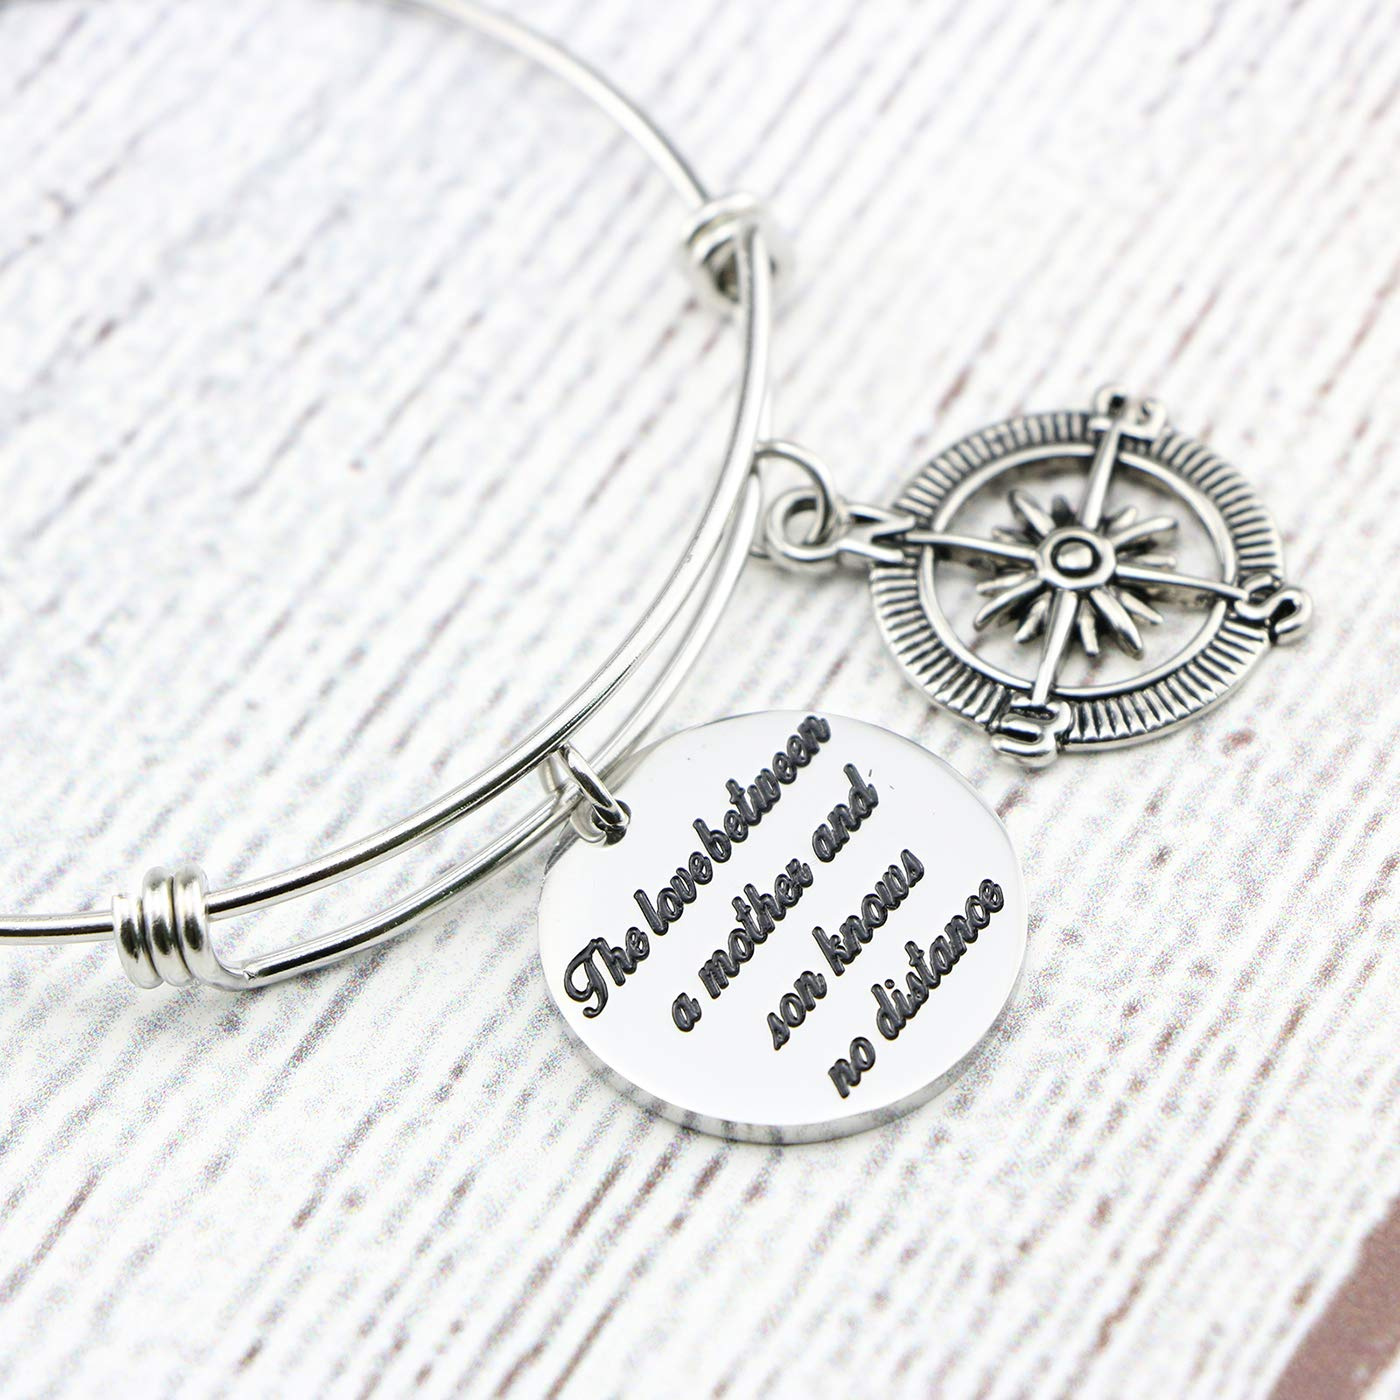 Memgift Gift for Mother Stainless Steel Bracelet The Love Between a Mother and Son Knows No Distance by Memgift (Image #4)